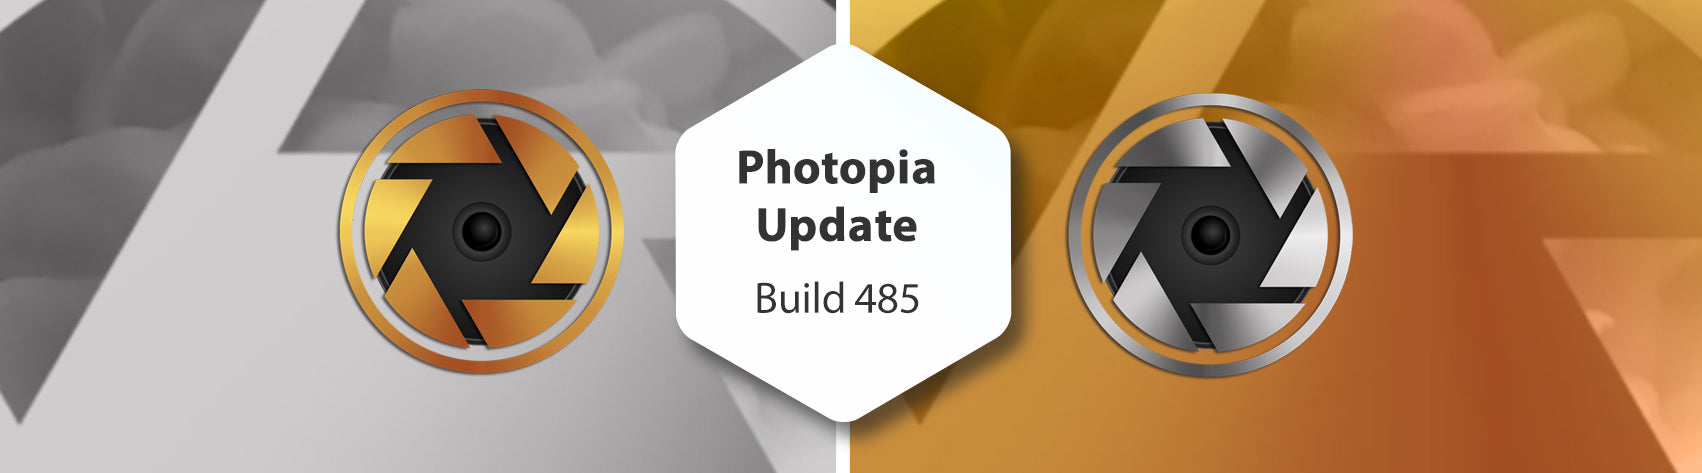 Photopia Update - Build 485